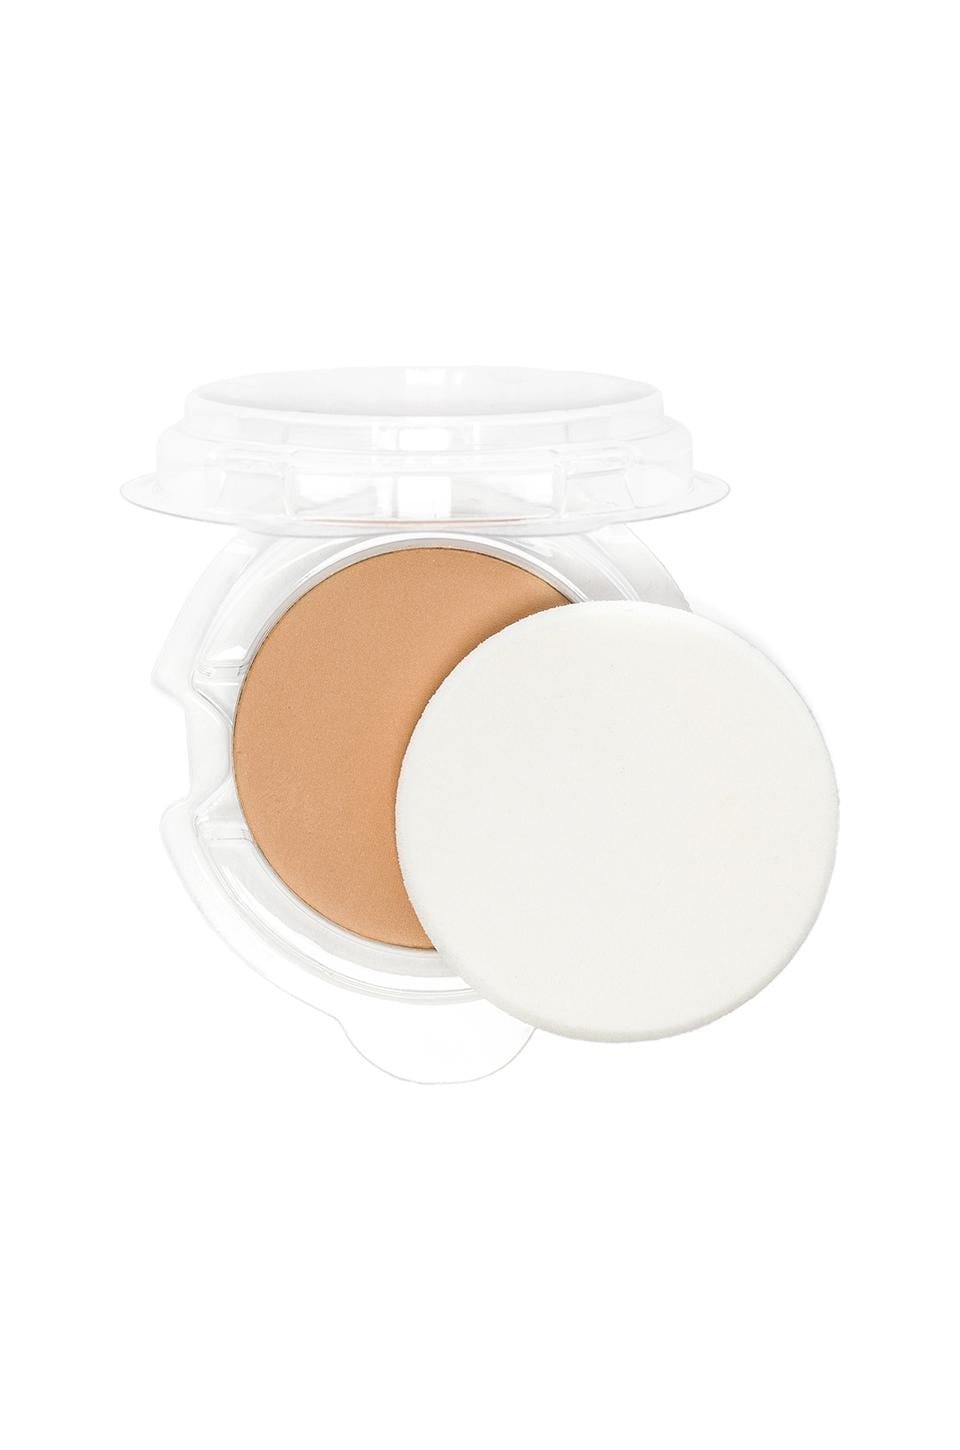 Stila Illuminating Powder Foundation in 60 Watts (Medium to Dark)